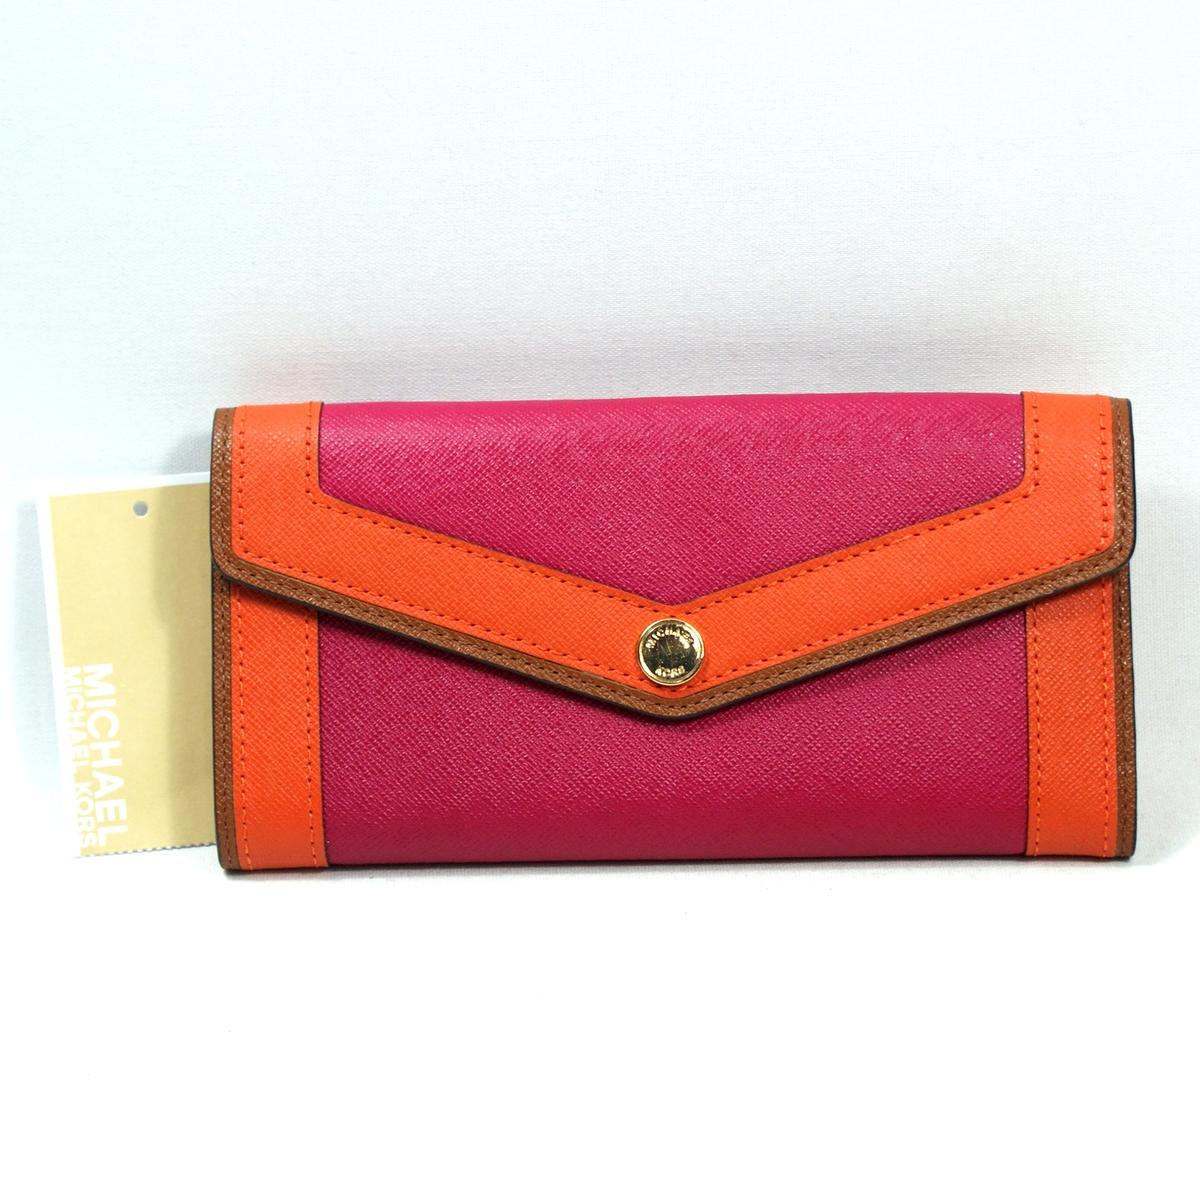 Michael Kors Saffiano Overlay Genuine Leather Pink Leather